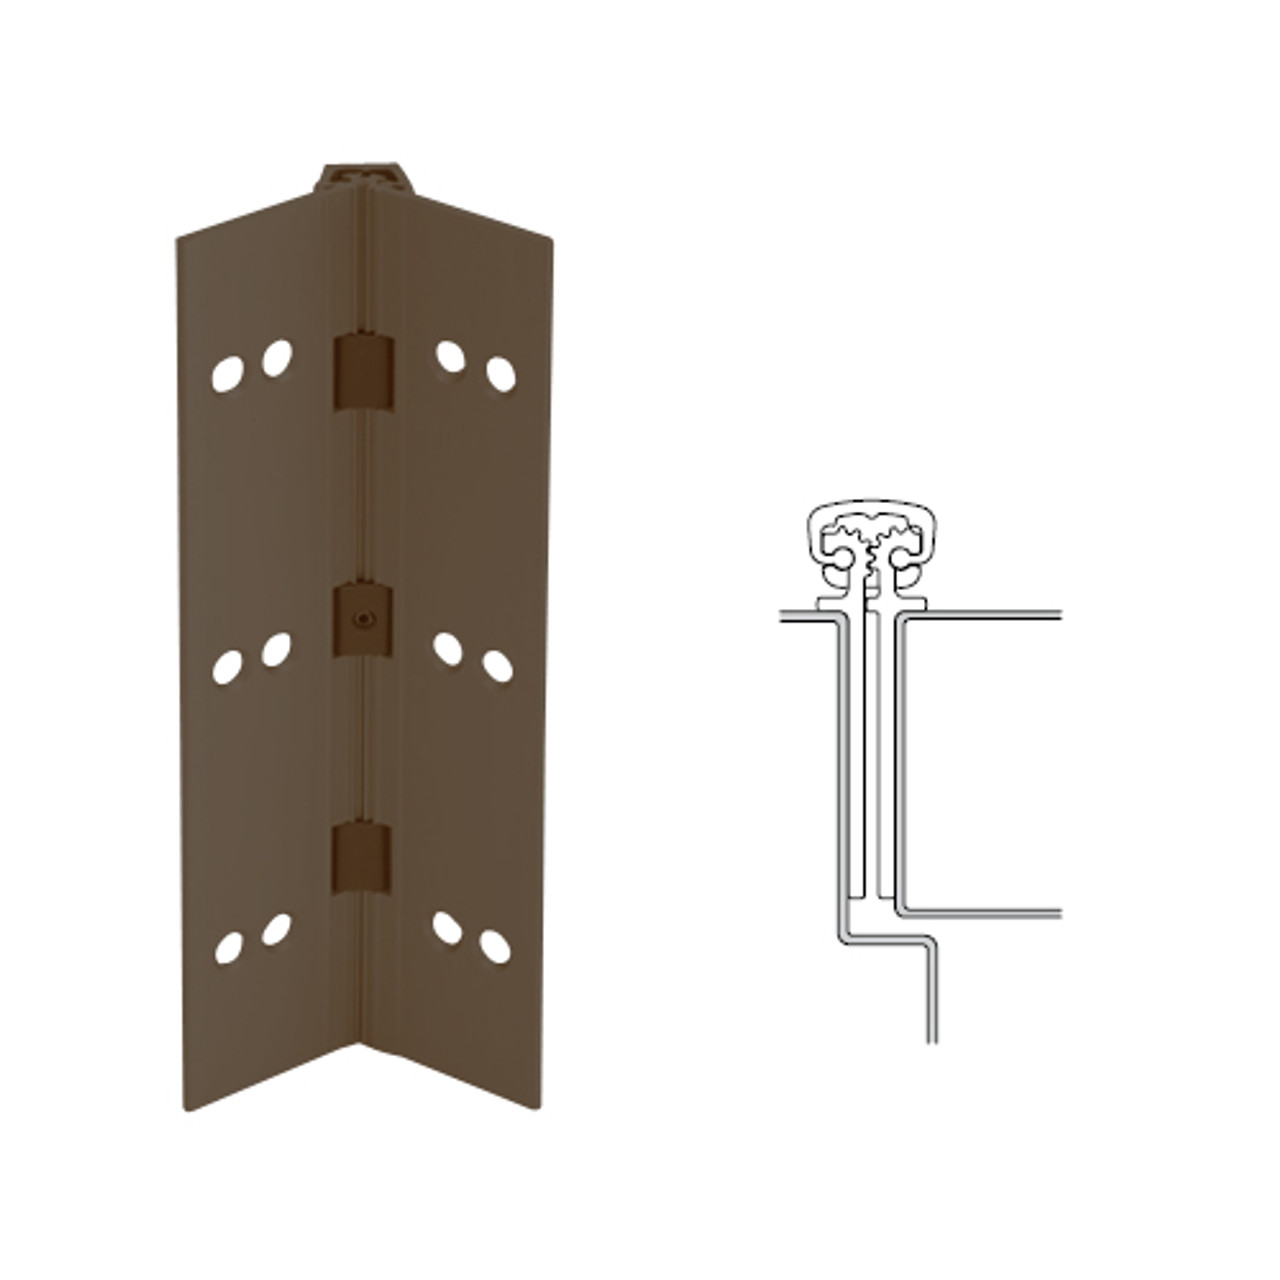 027XY-313AN-120-SECHM IVES Full Mortise Continuous Geared Hinges with Security Screws - Hex Pin Drive in Dark Bronze Anodized